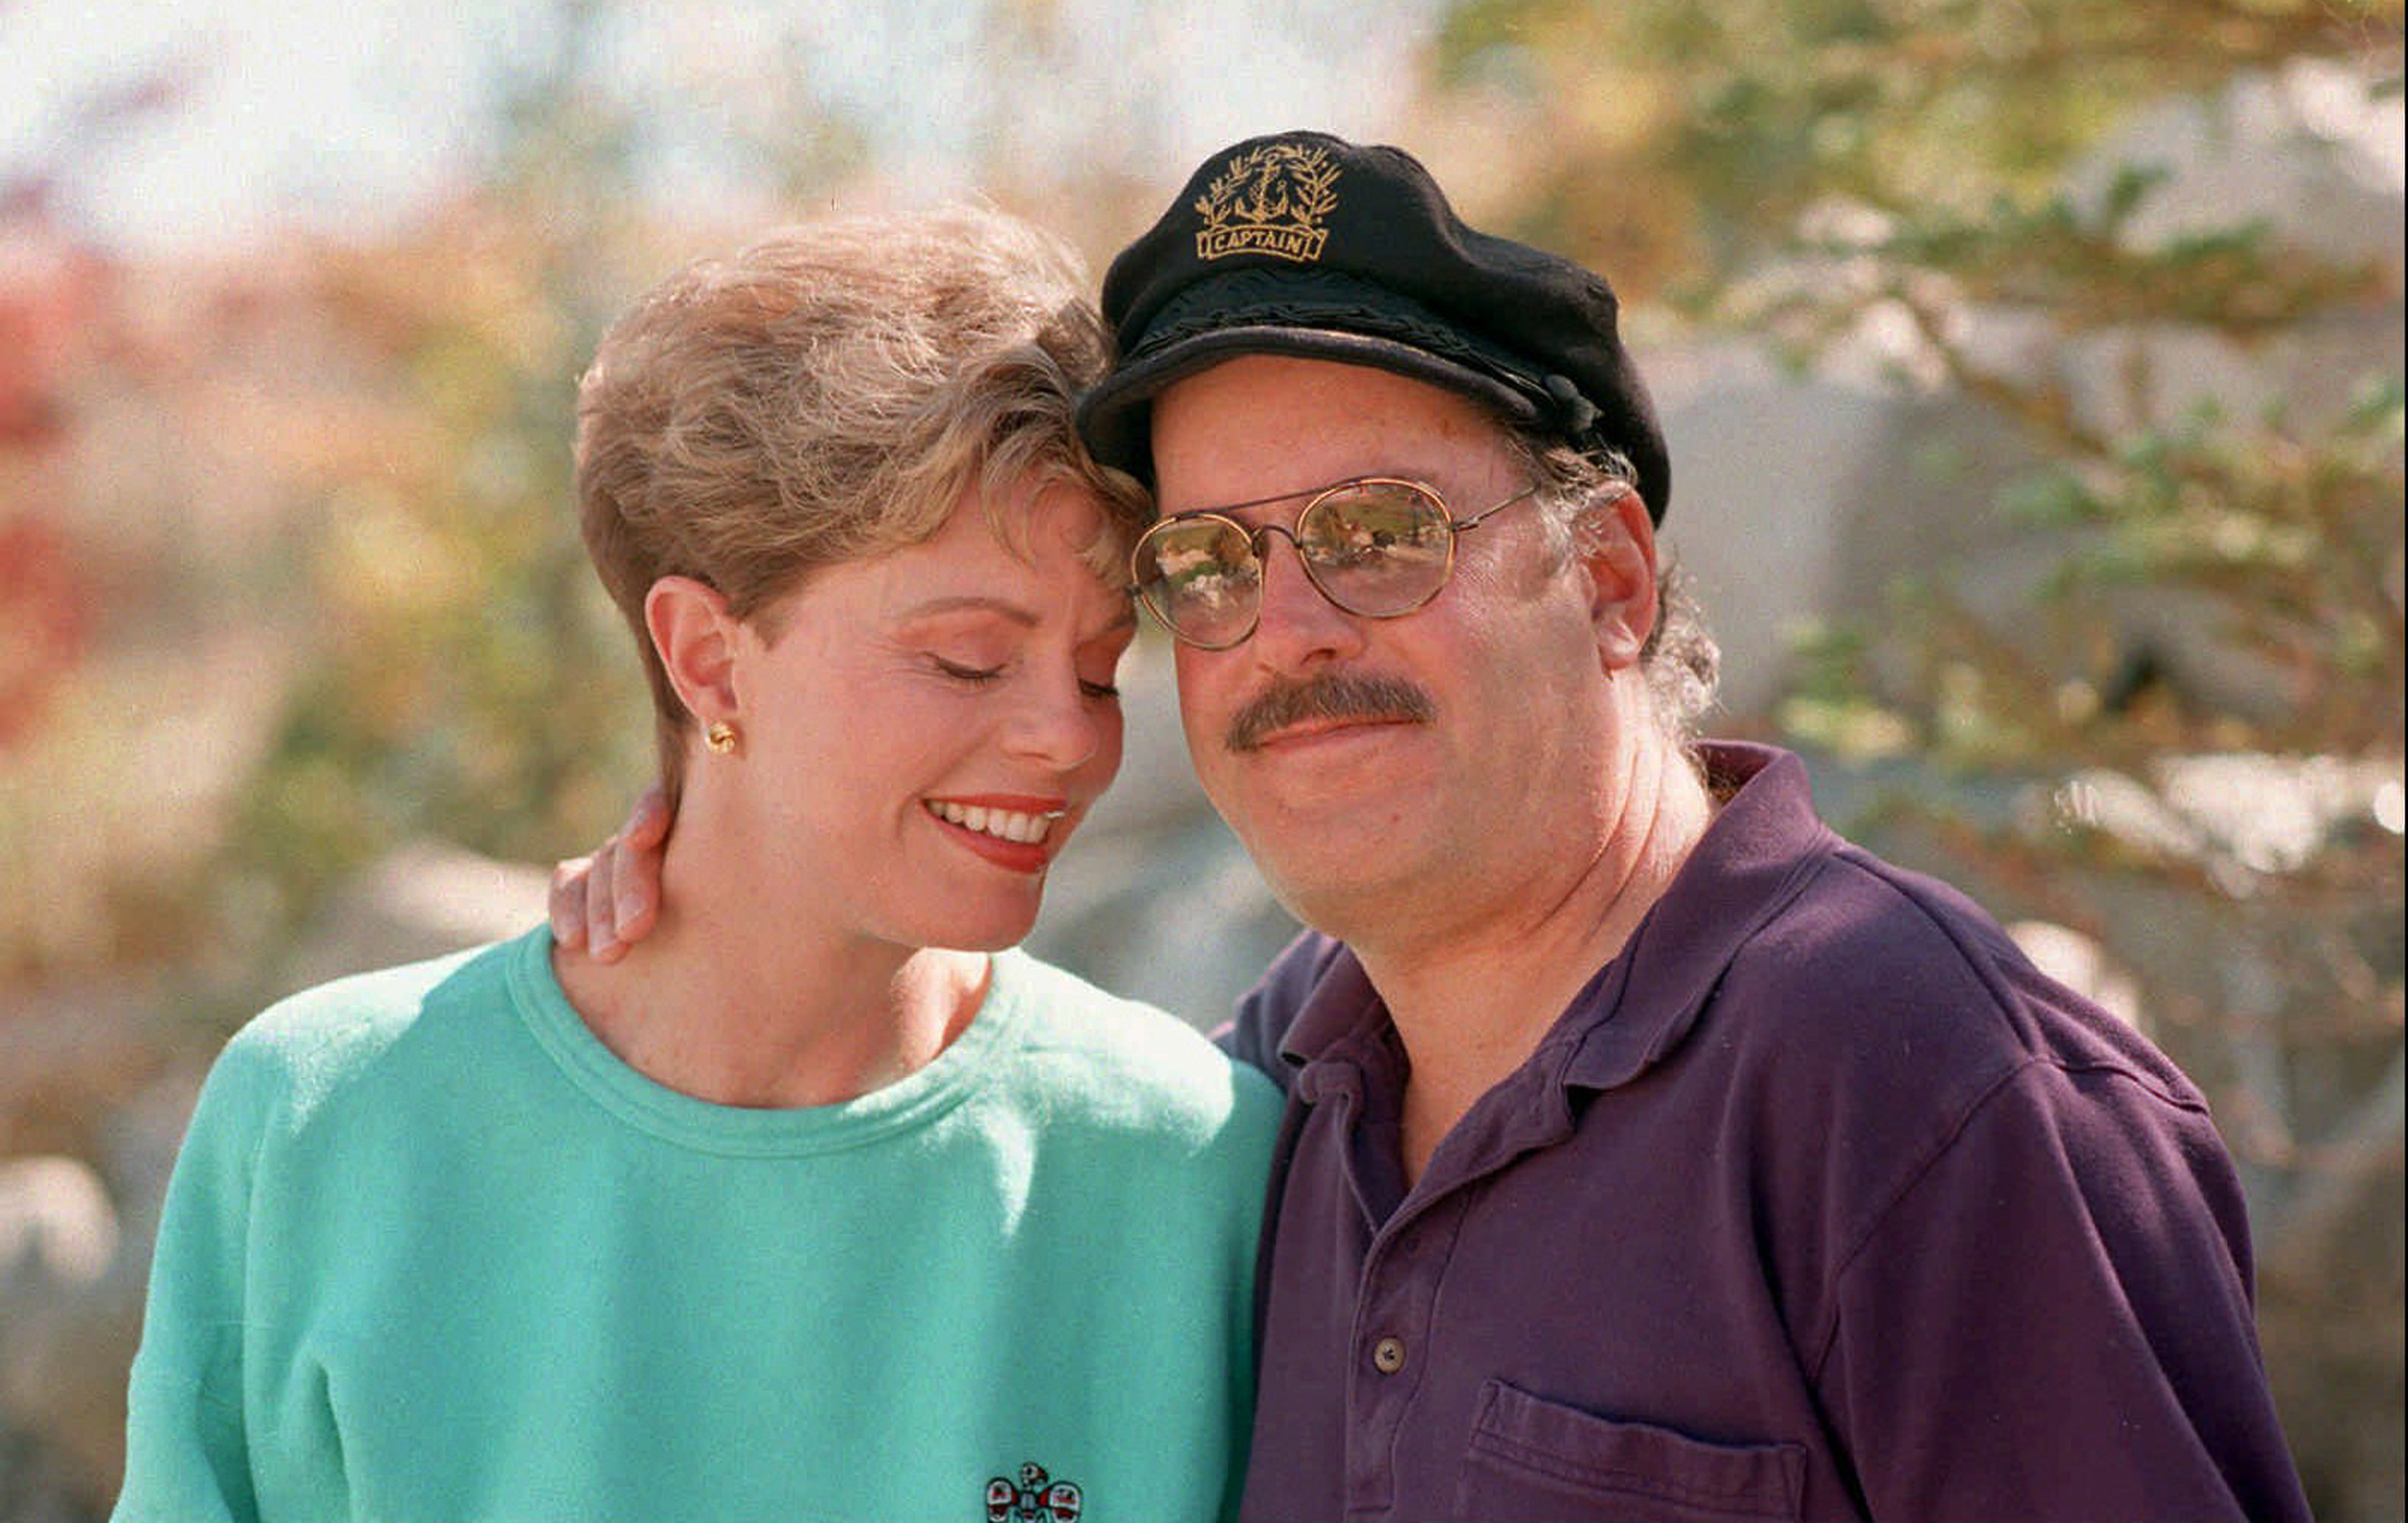 IMAGE: Captain and Tennille